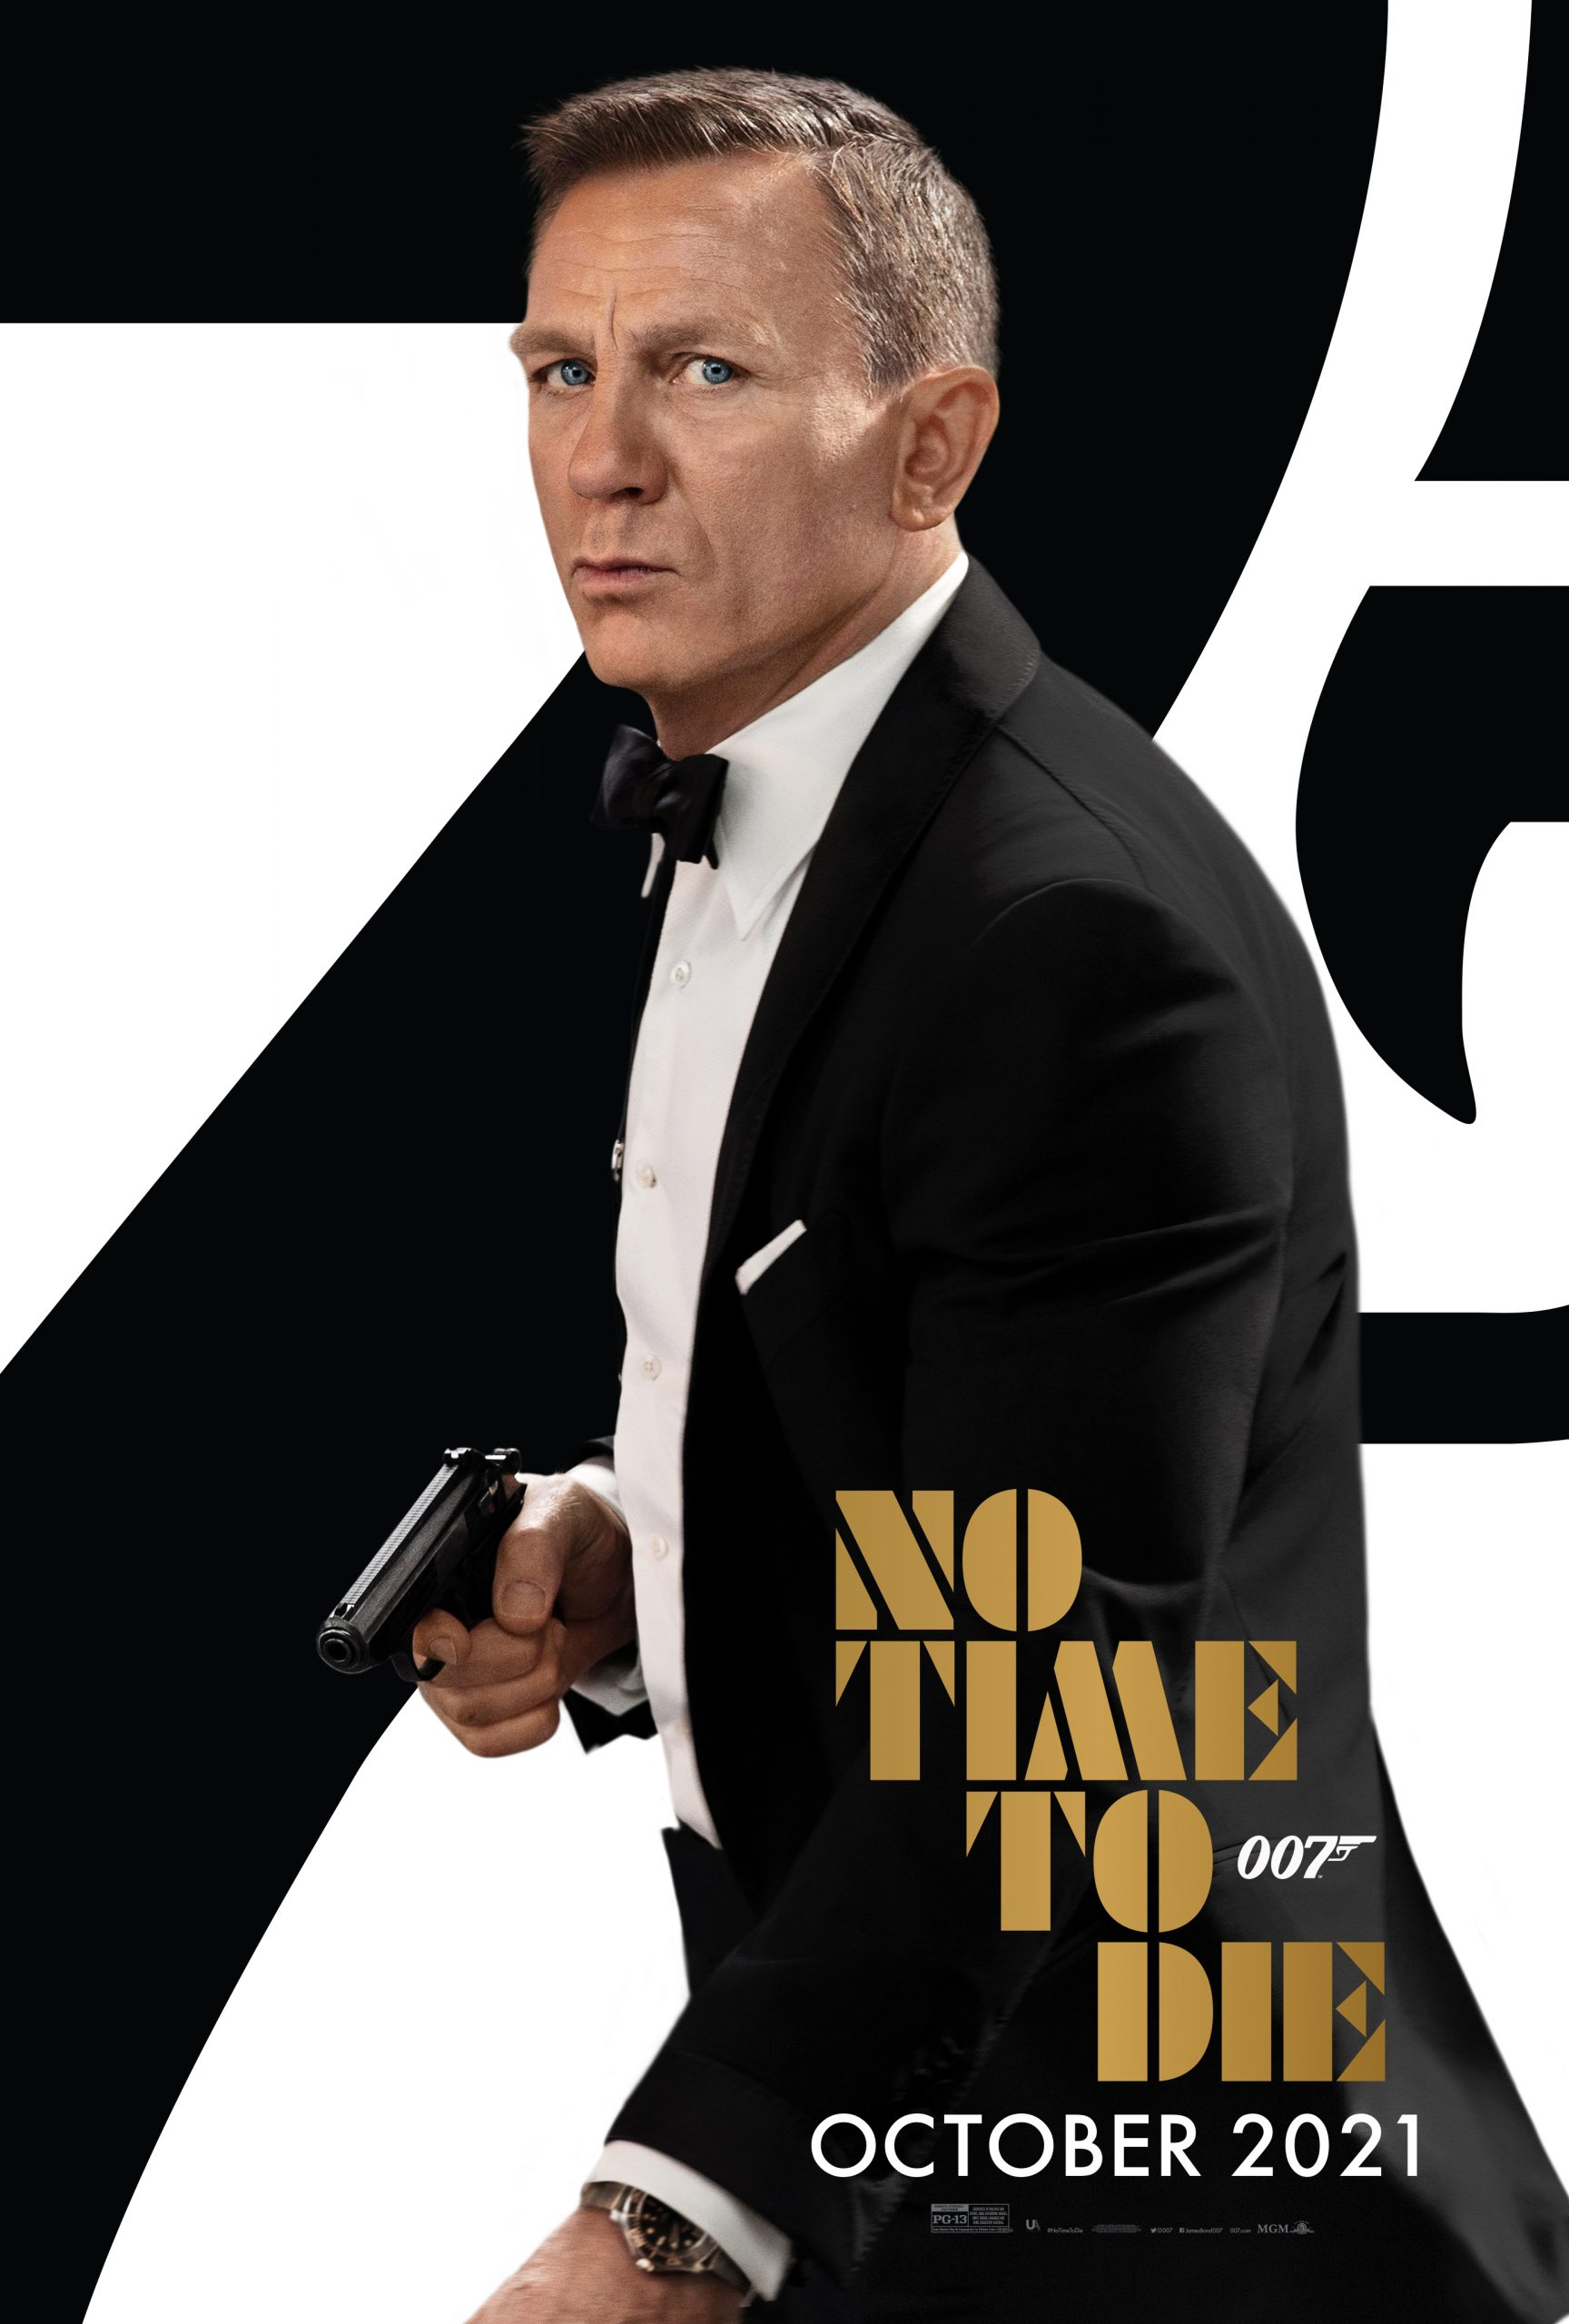 no time to die full movie in hindi download